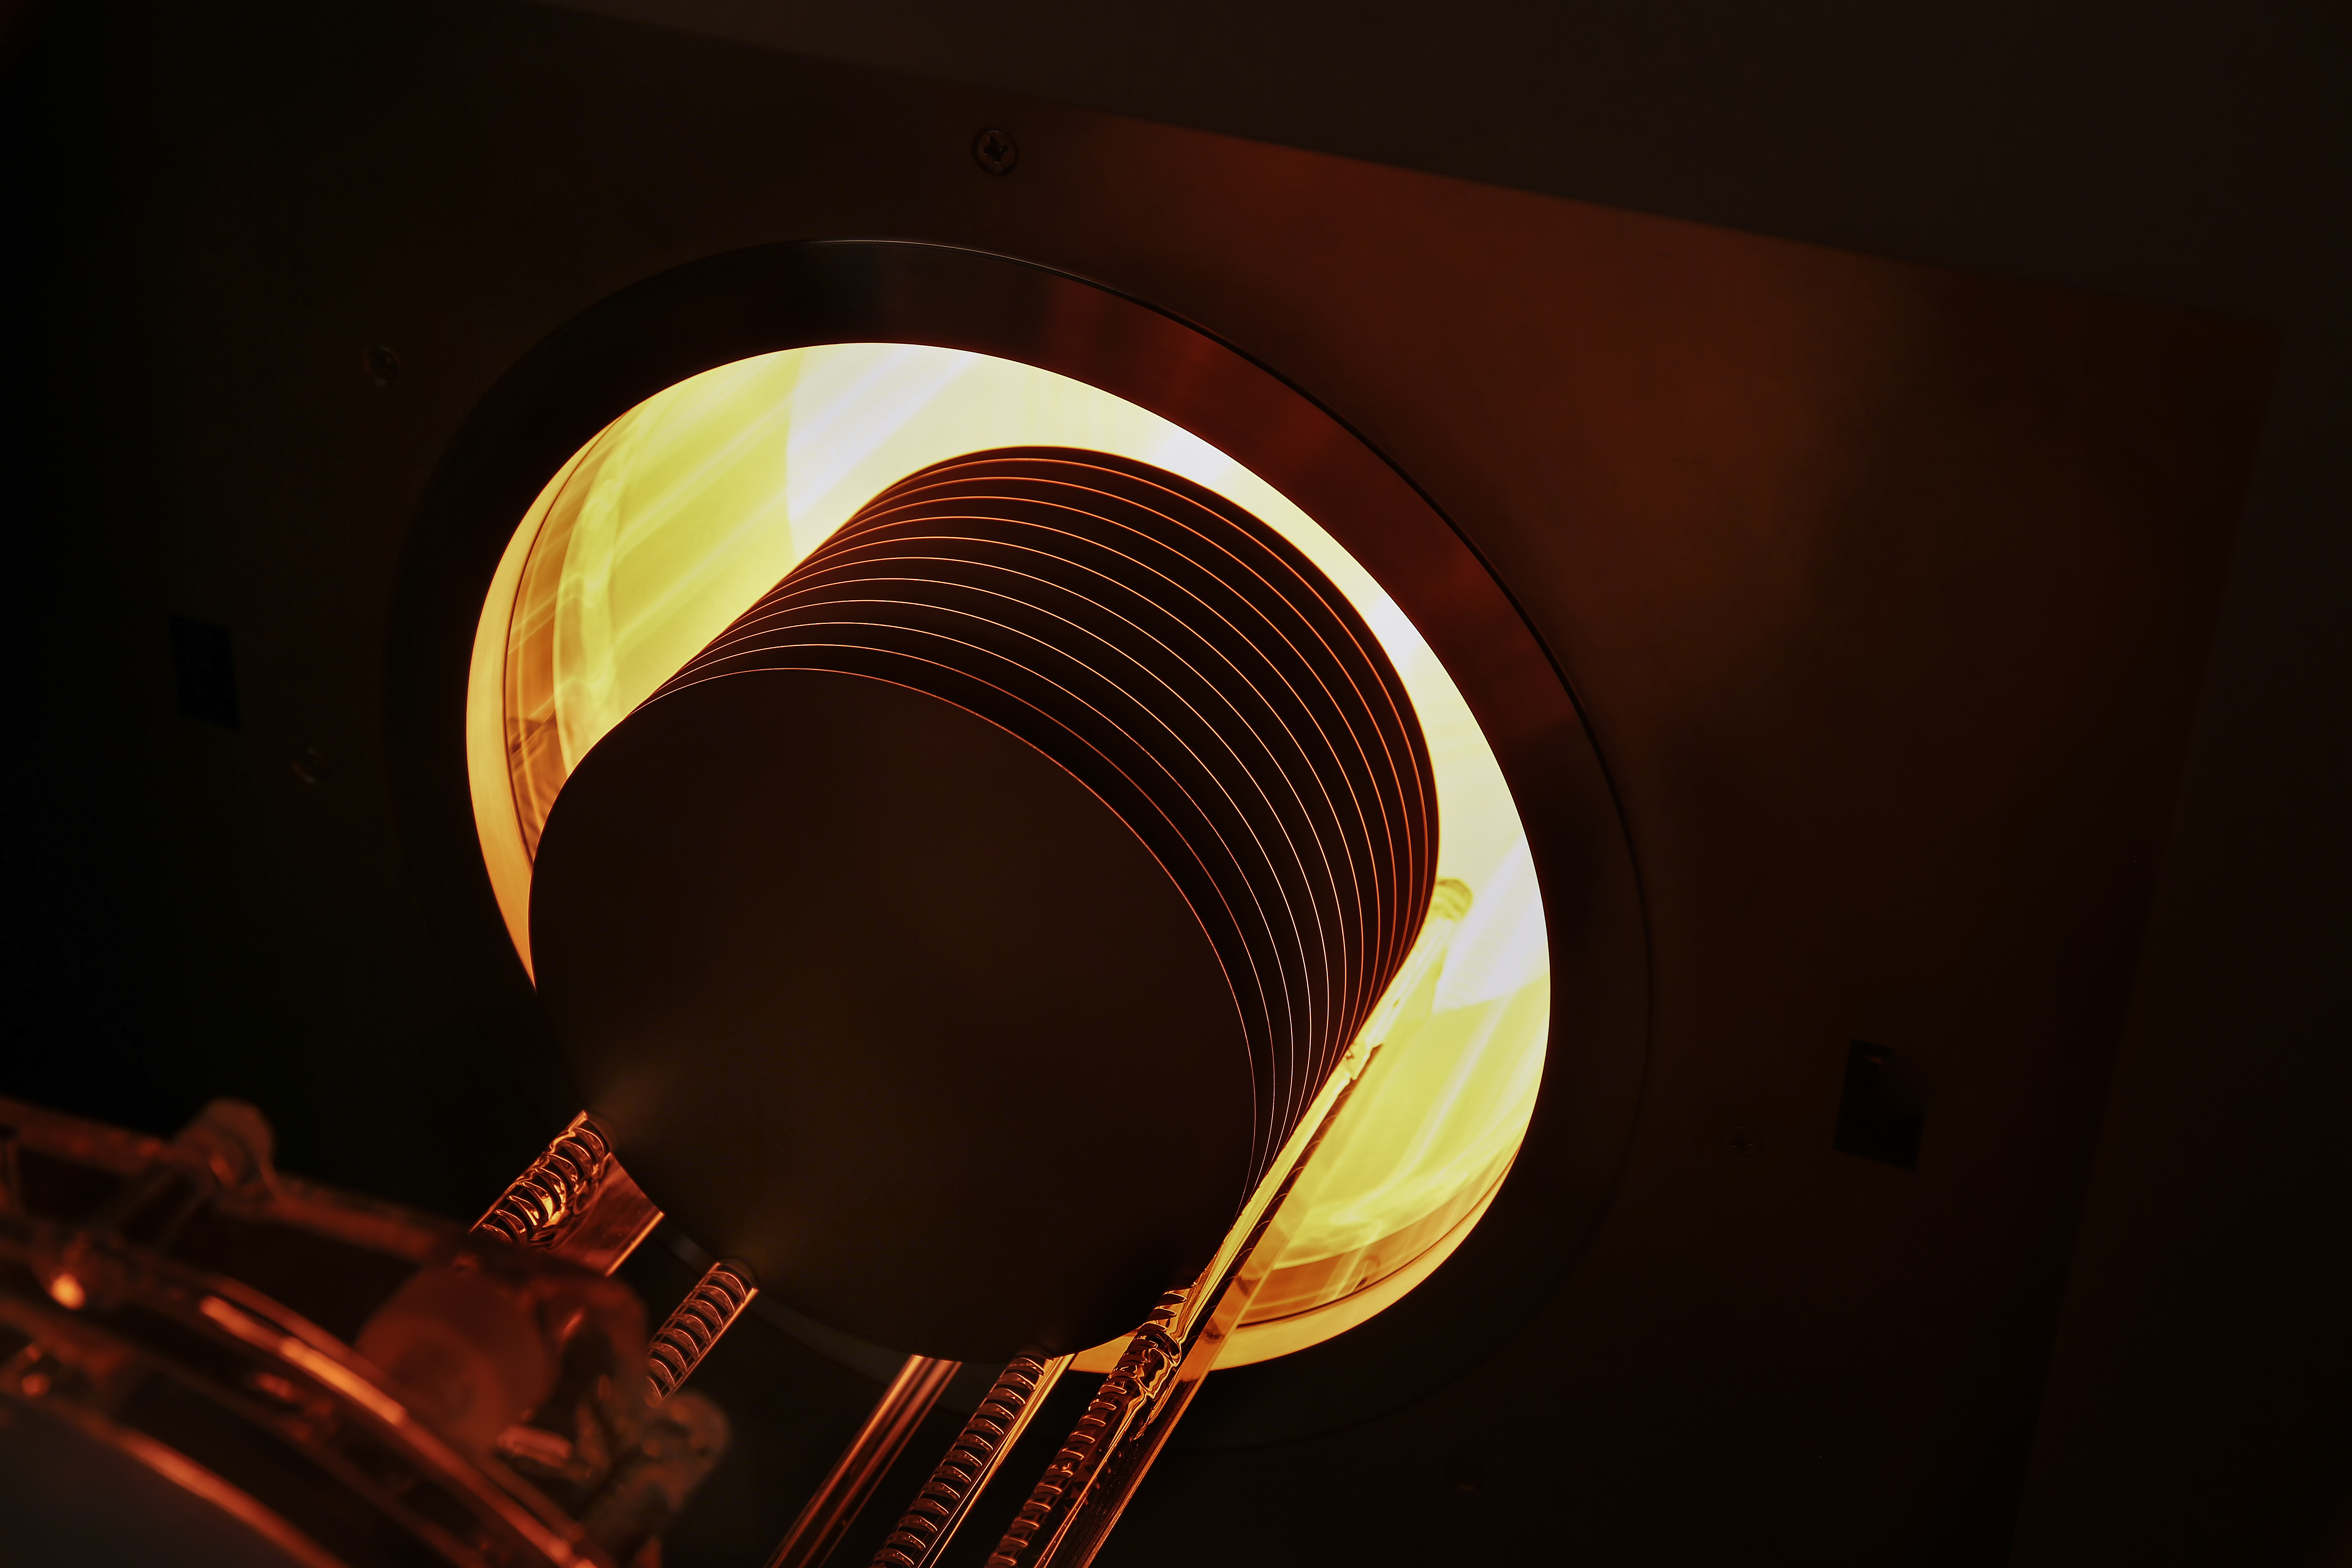 PEO 604 drive in wafer top heating on dark